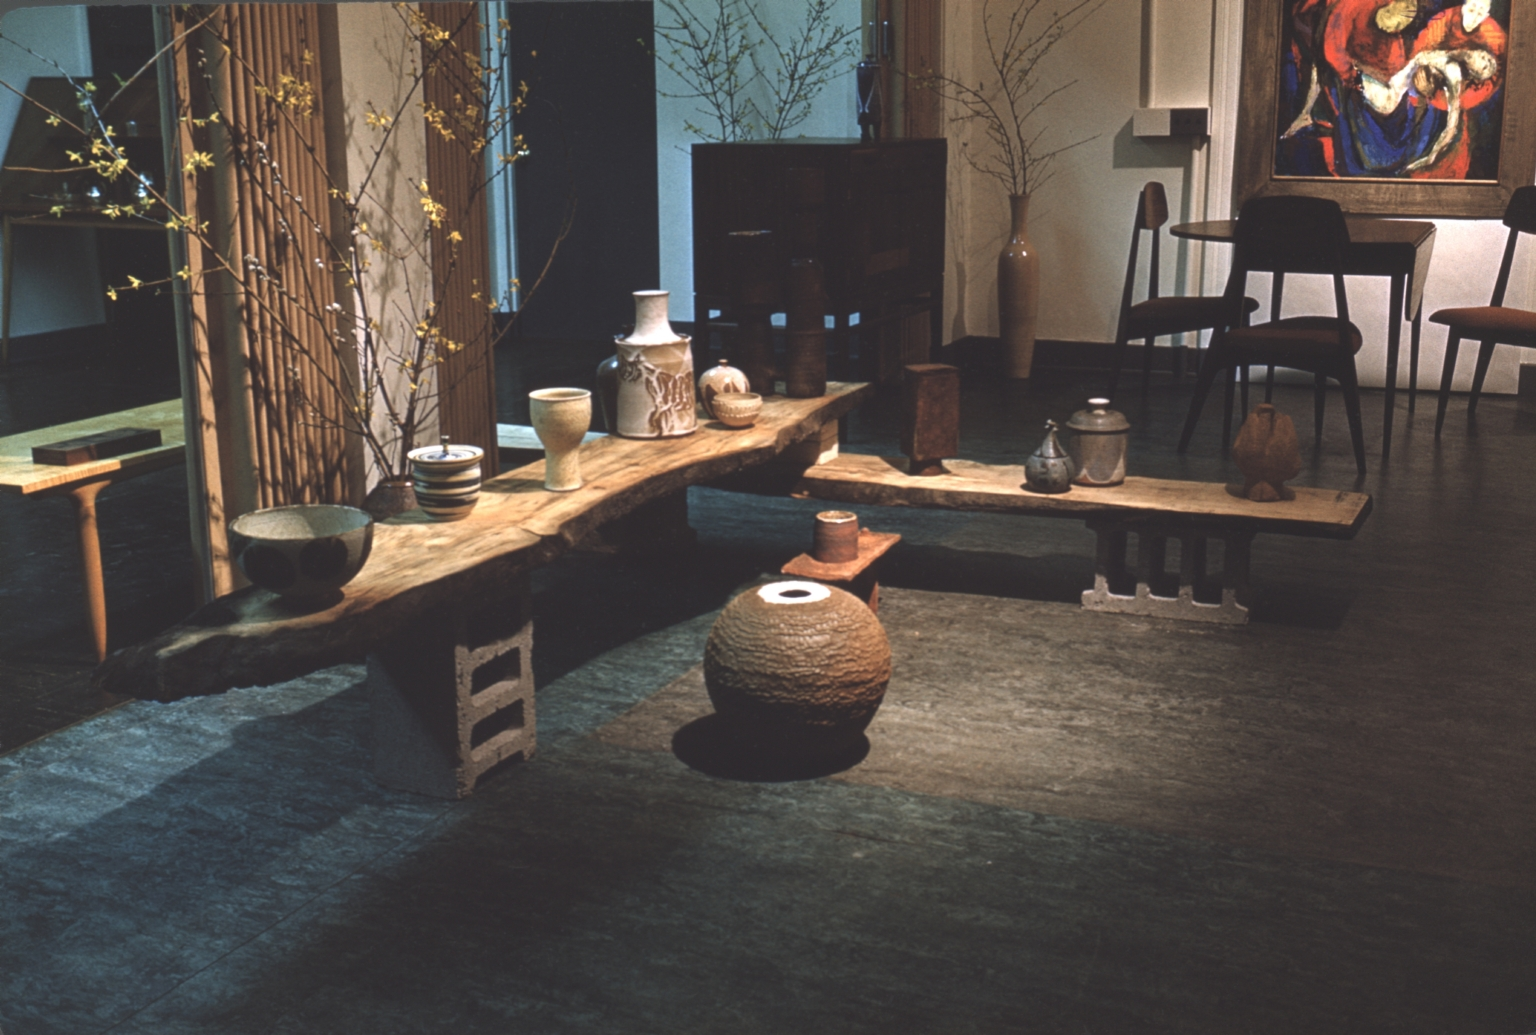 Exhibition of furniture and ceramics